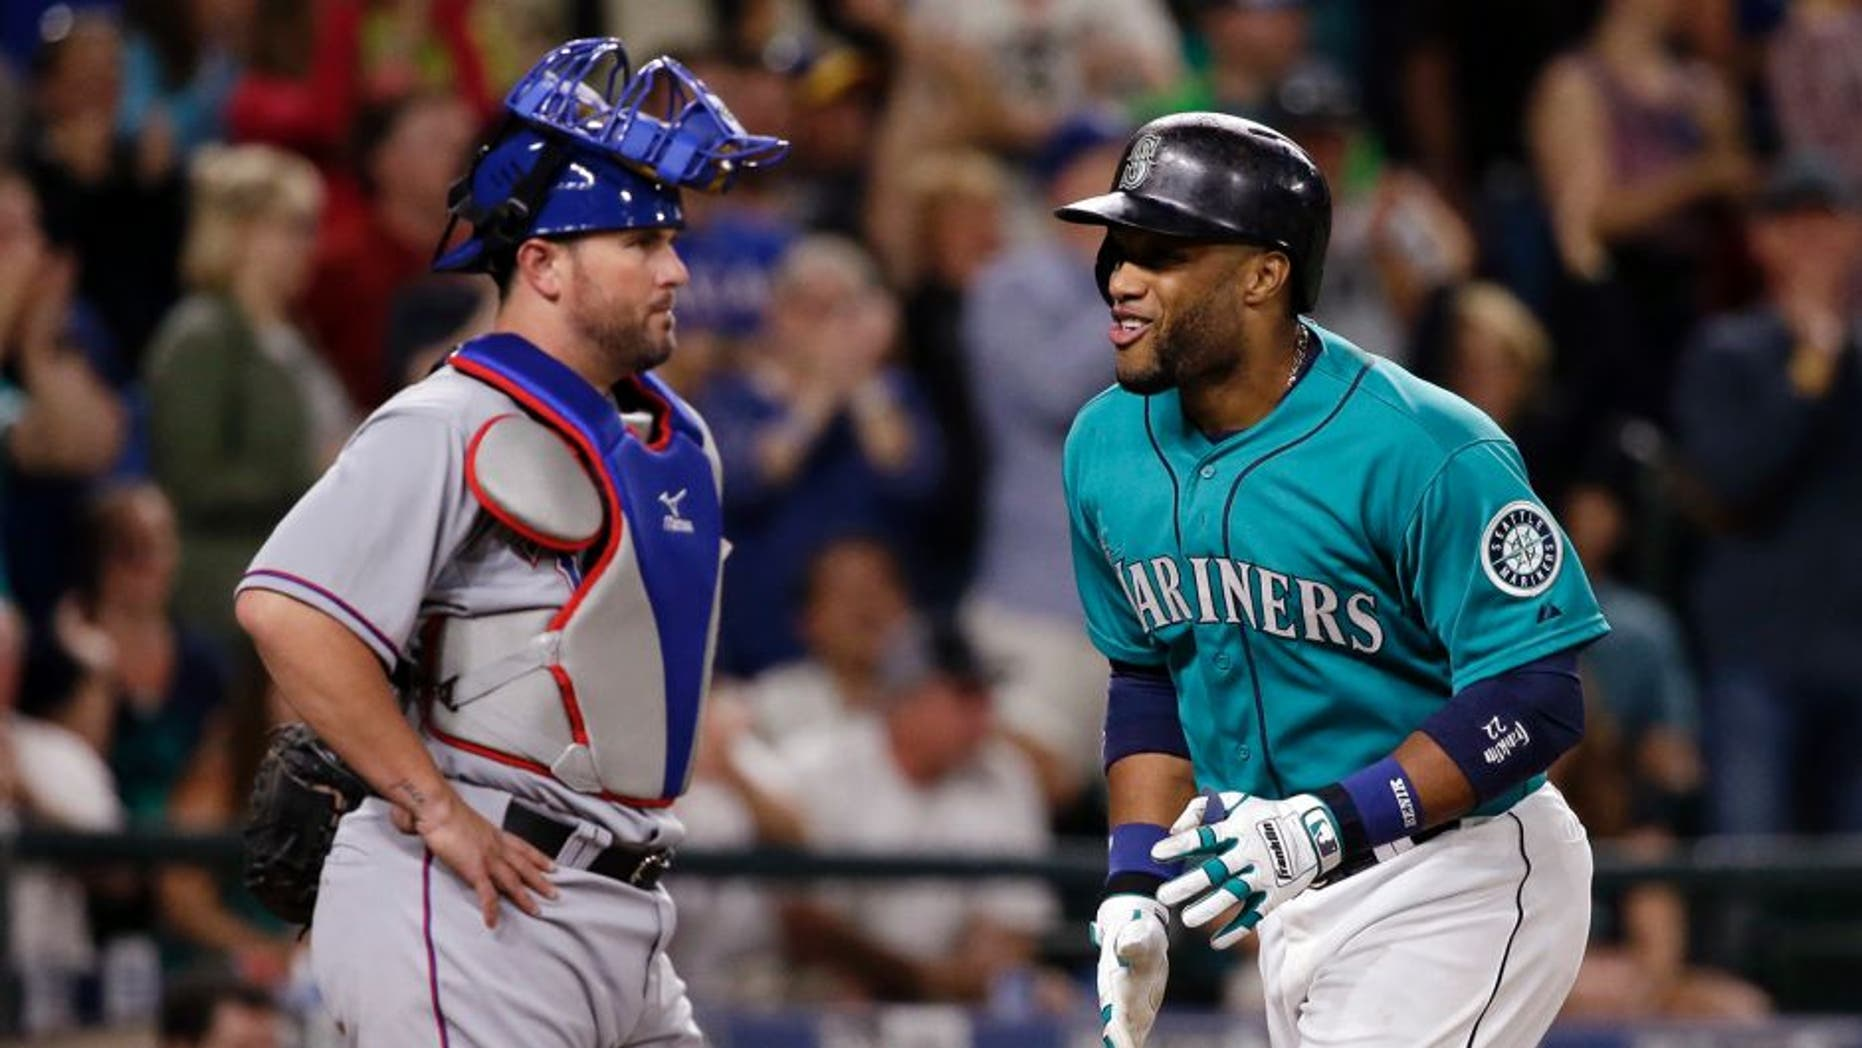 Seattle Mariners' Robinson Cano, right, smiles as he scores on his home run as Texas Rangers catcher Bobby Wilson waits during the sixth inning of a baseball game Friday, Aug. 7, 2015, in Seattle. (AP Photo/Elaine Thompson)